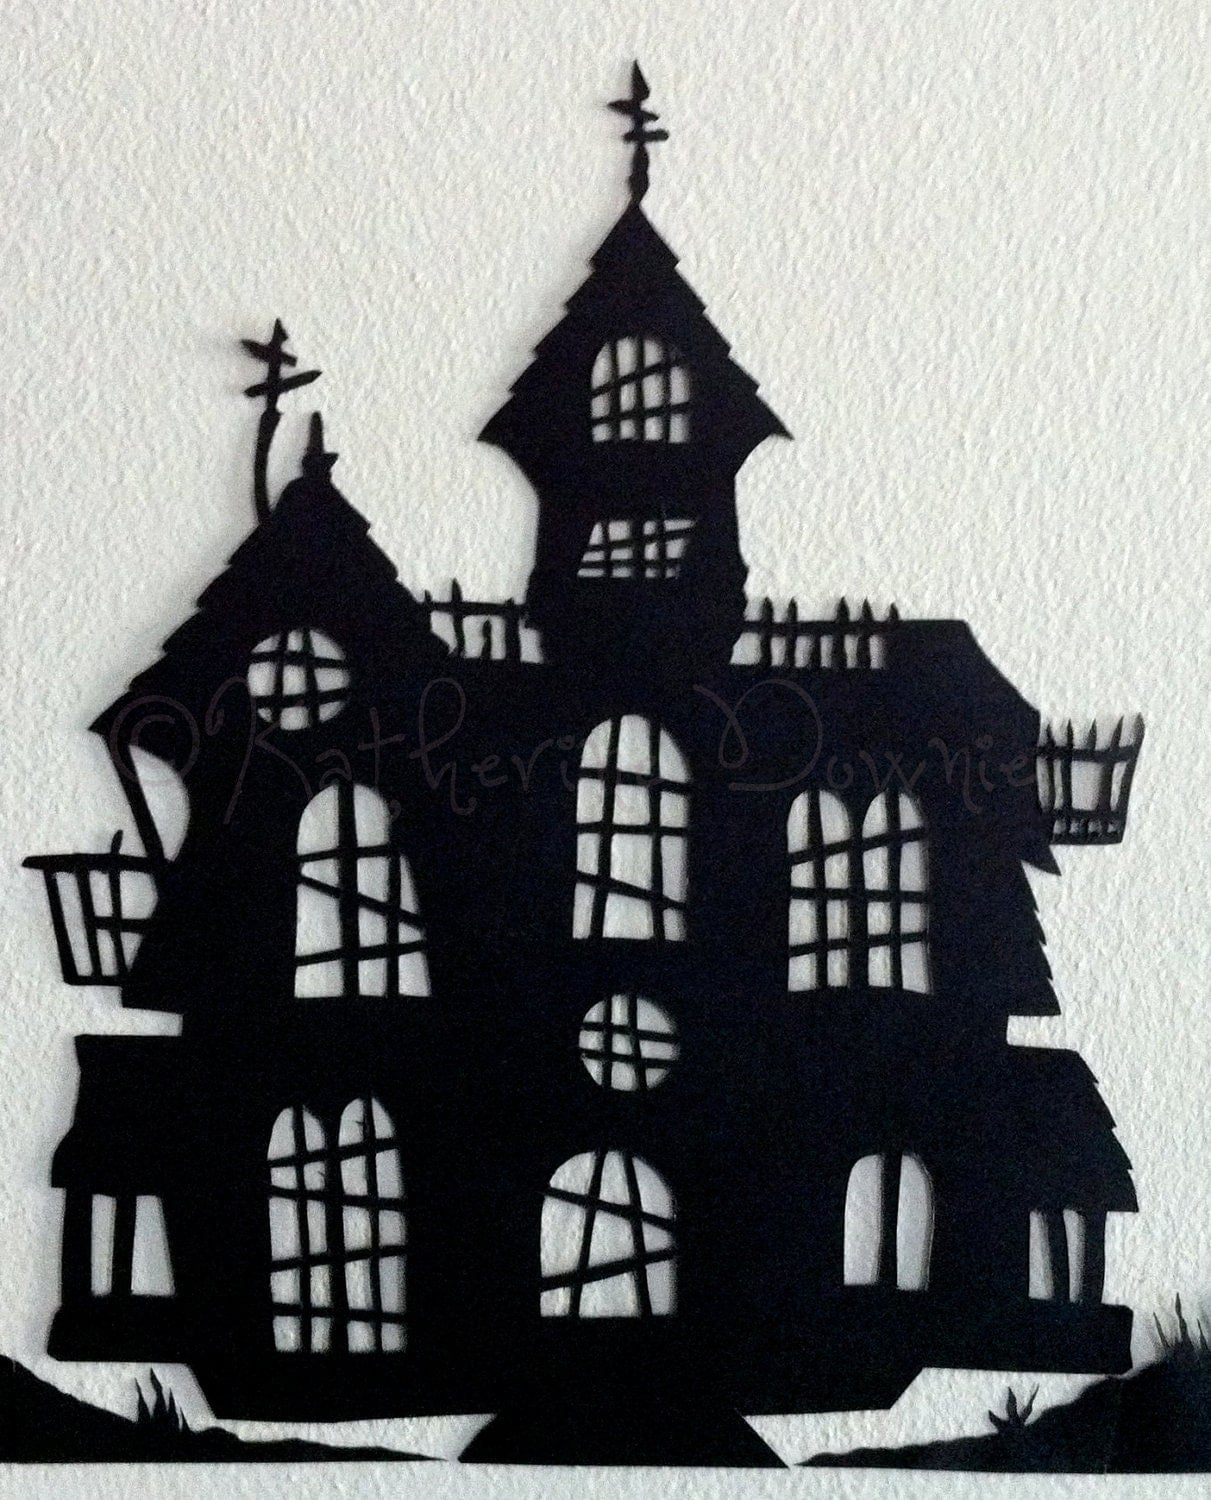 pin haunted house silhouette on pinterest. Black Bedroom Furniture Sets. Home Design Ideas